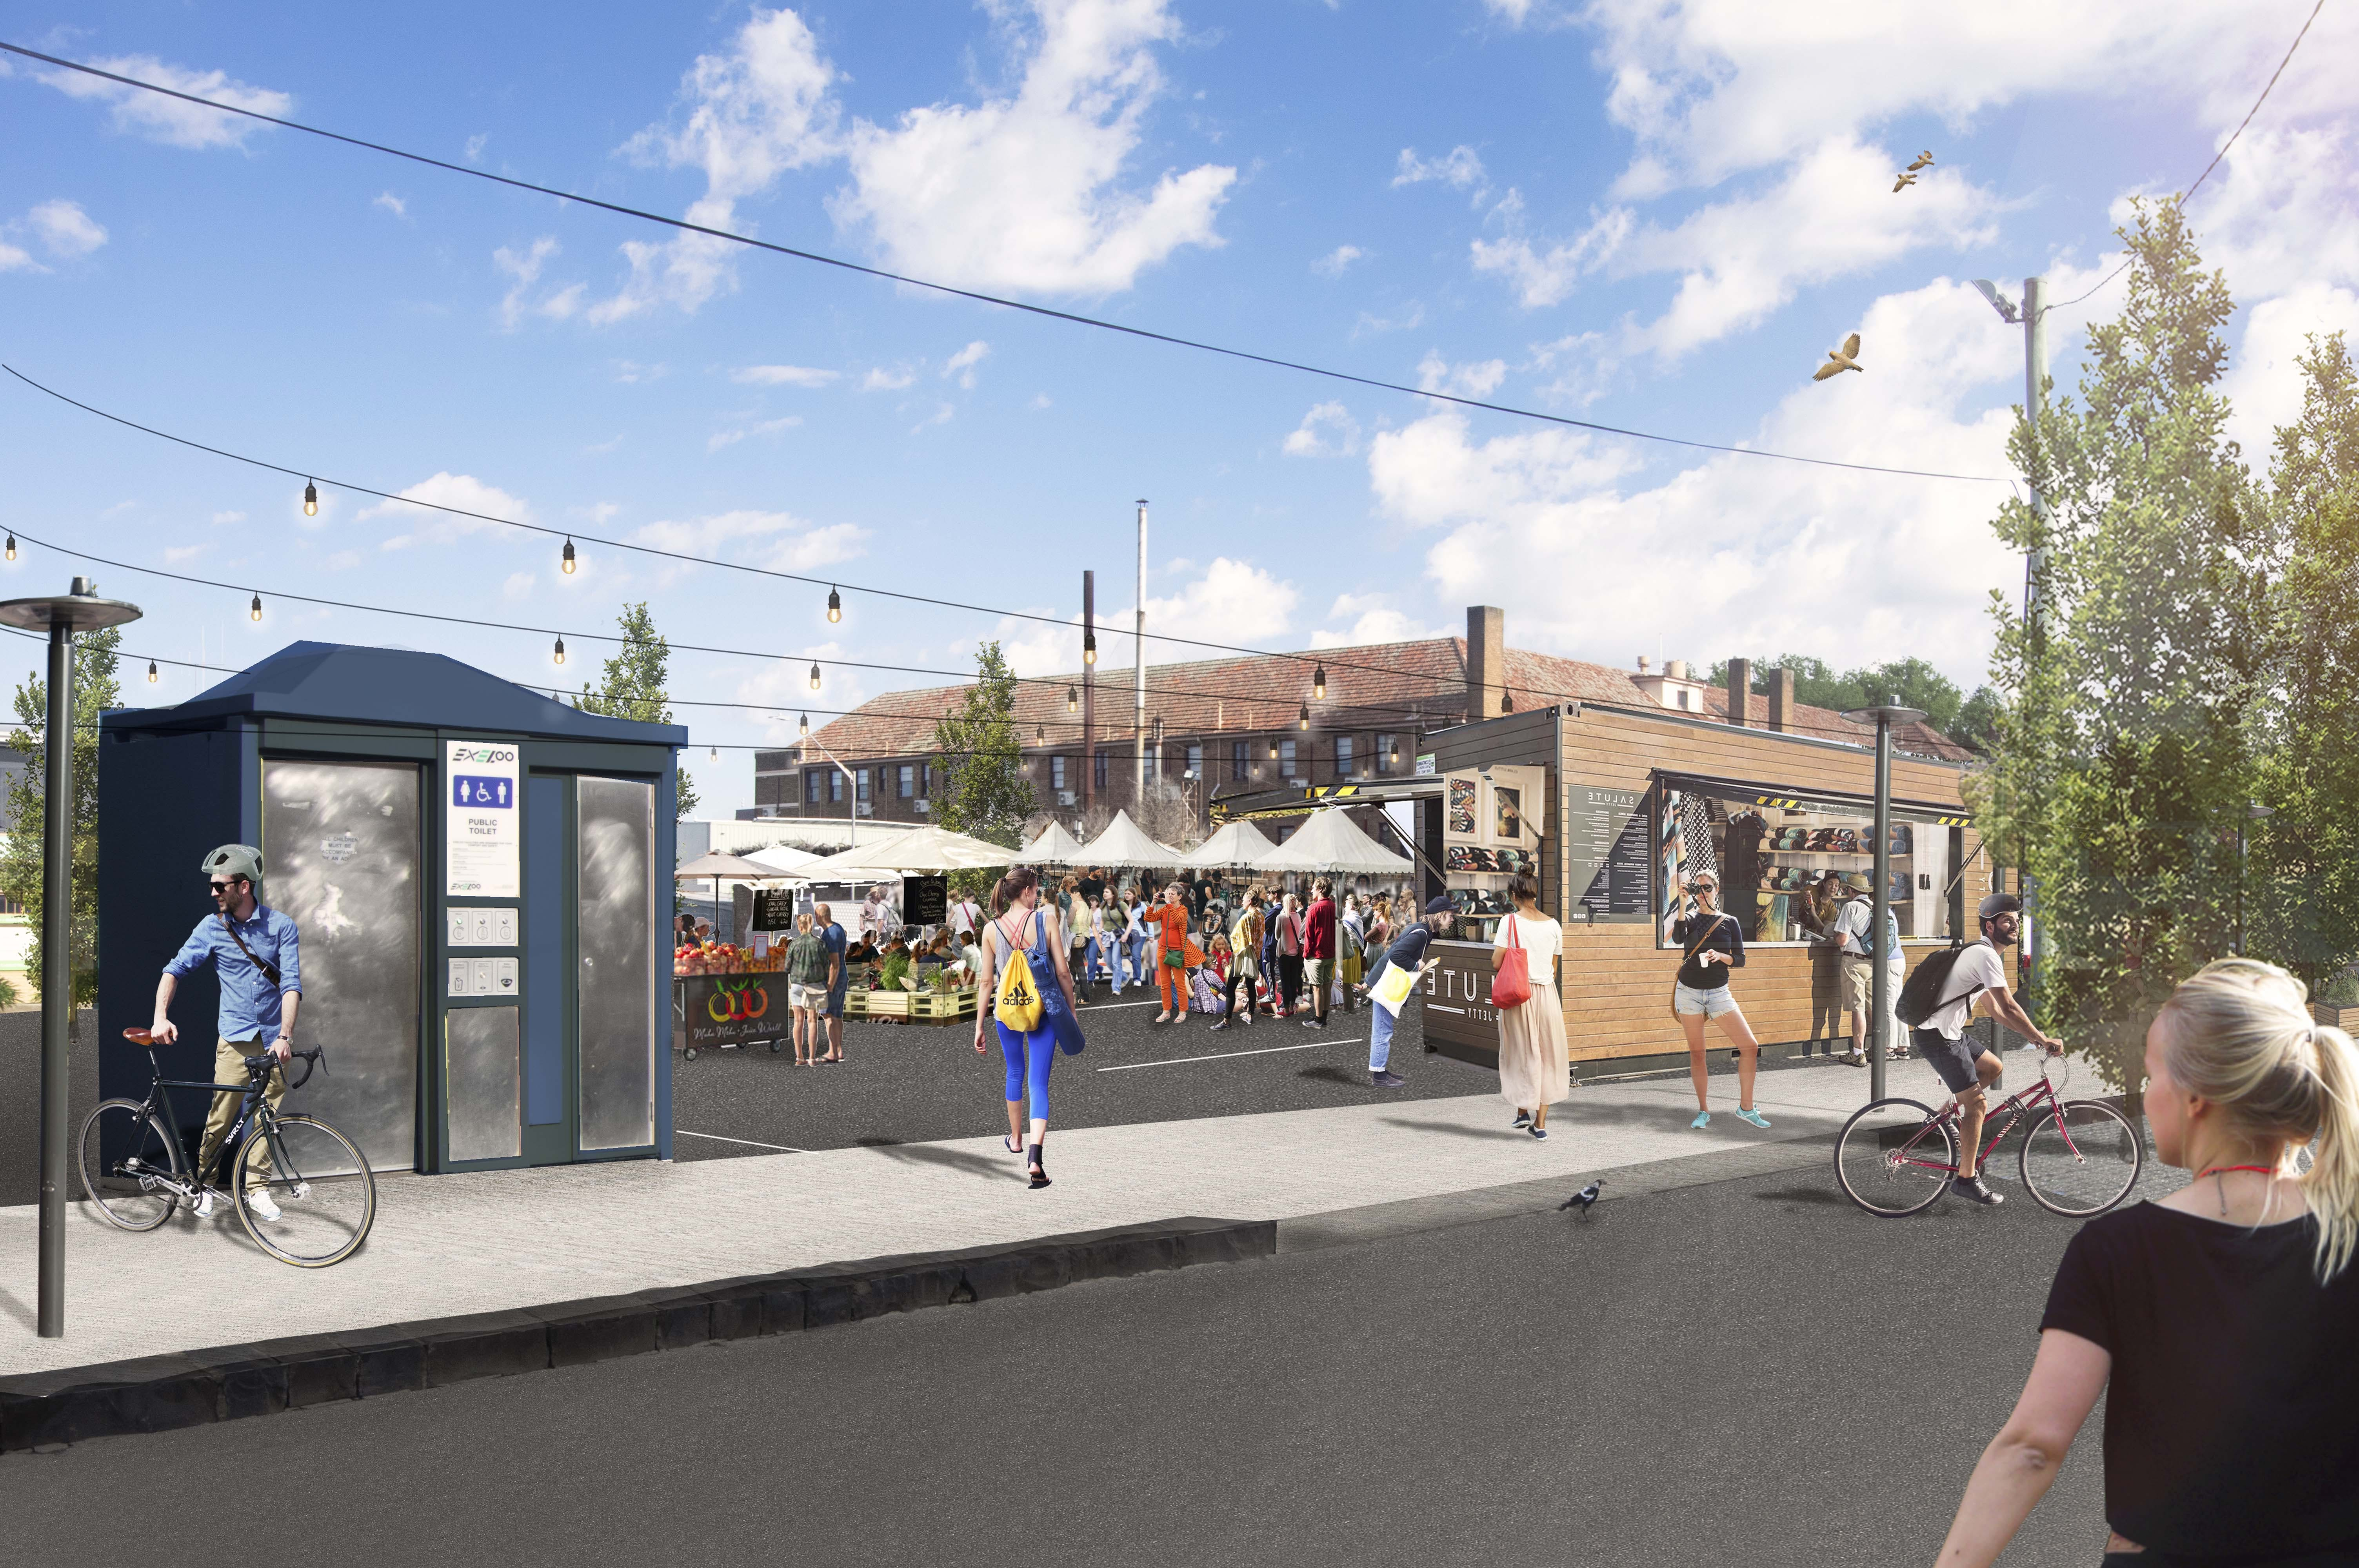 McNamara Street (View of proposed venue for markets in car park)